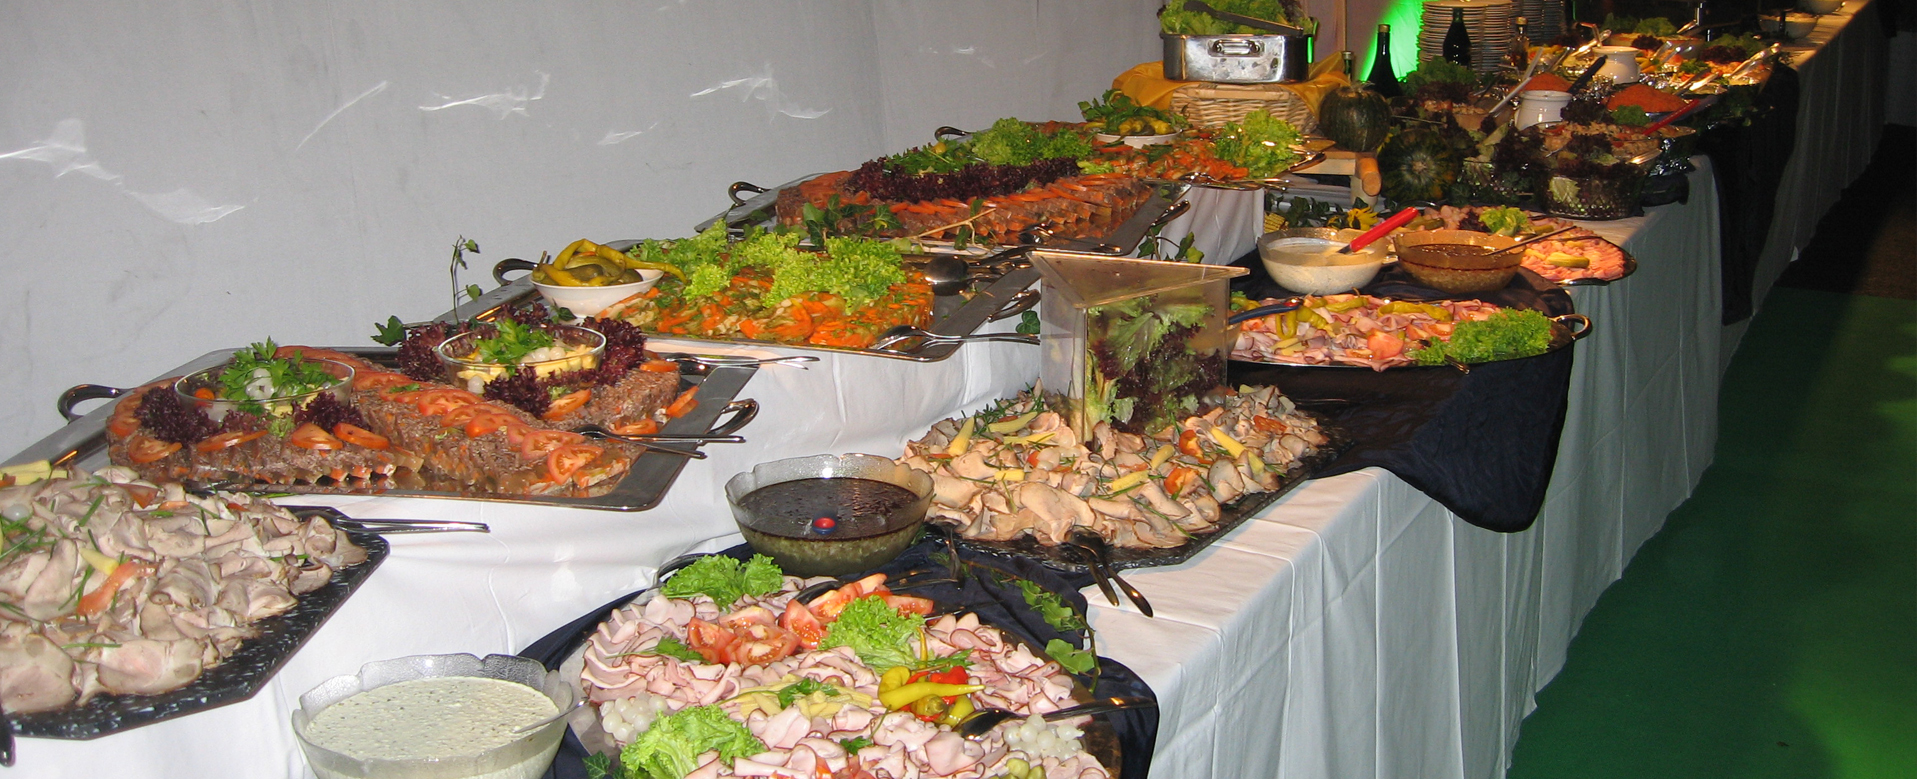 Catering4